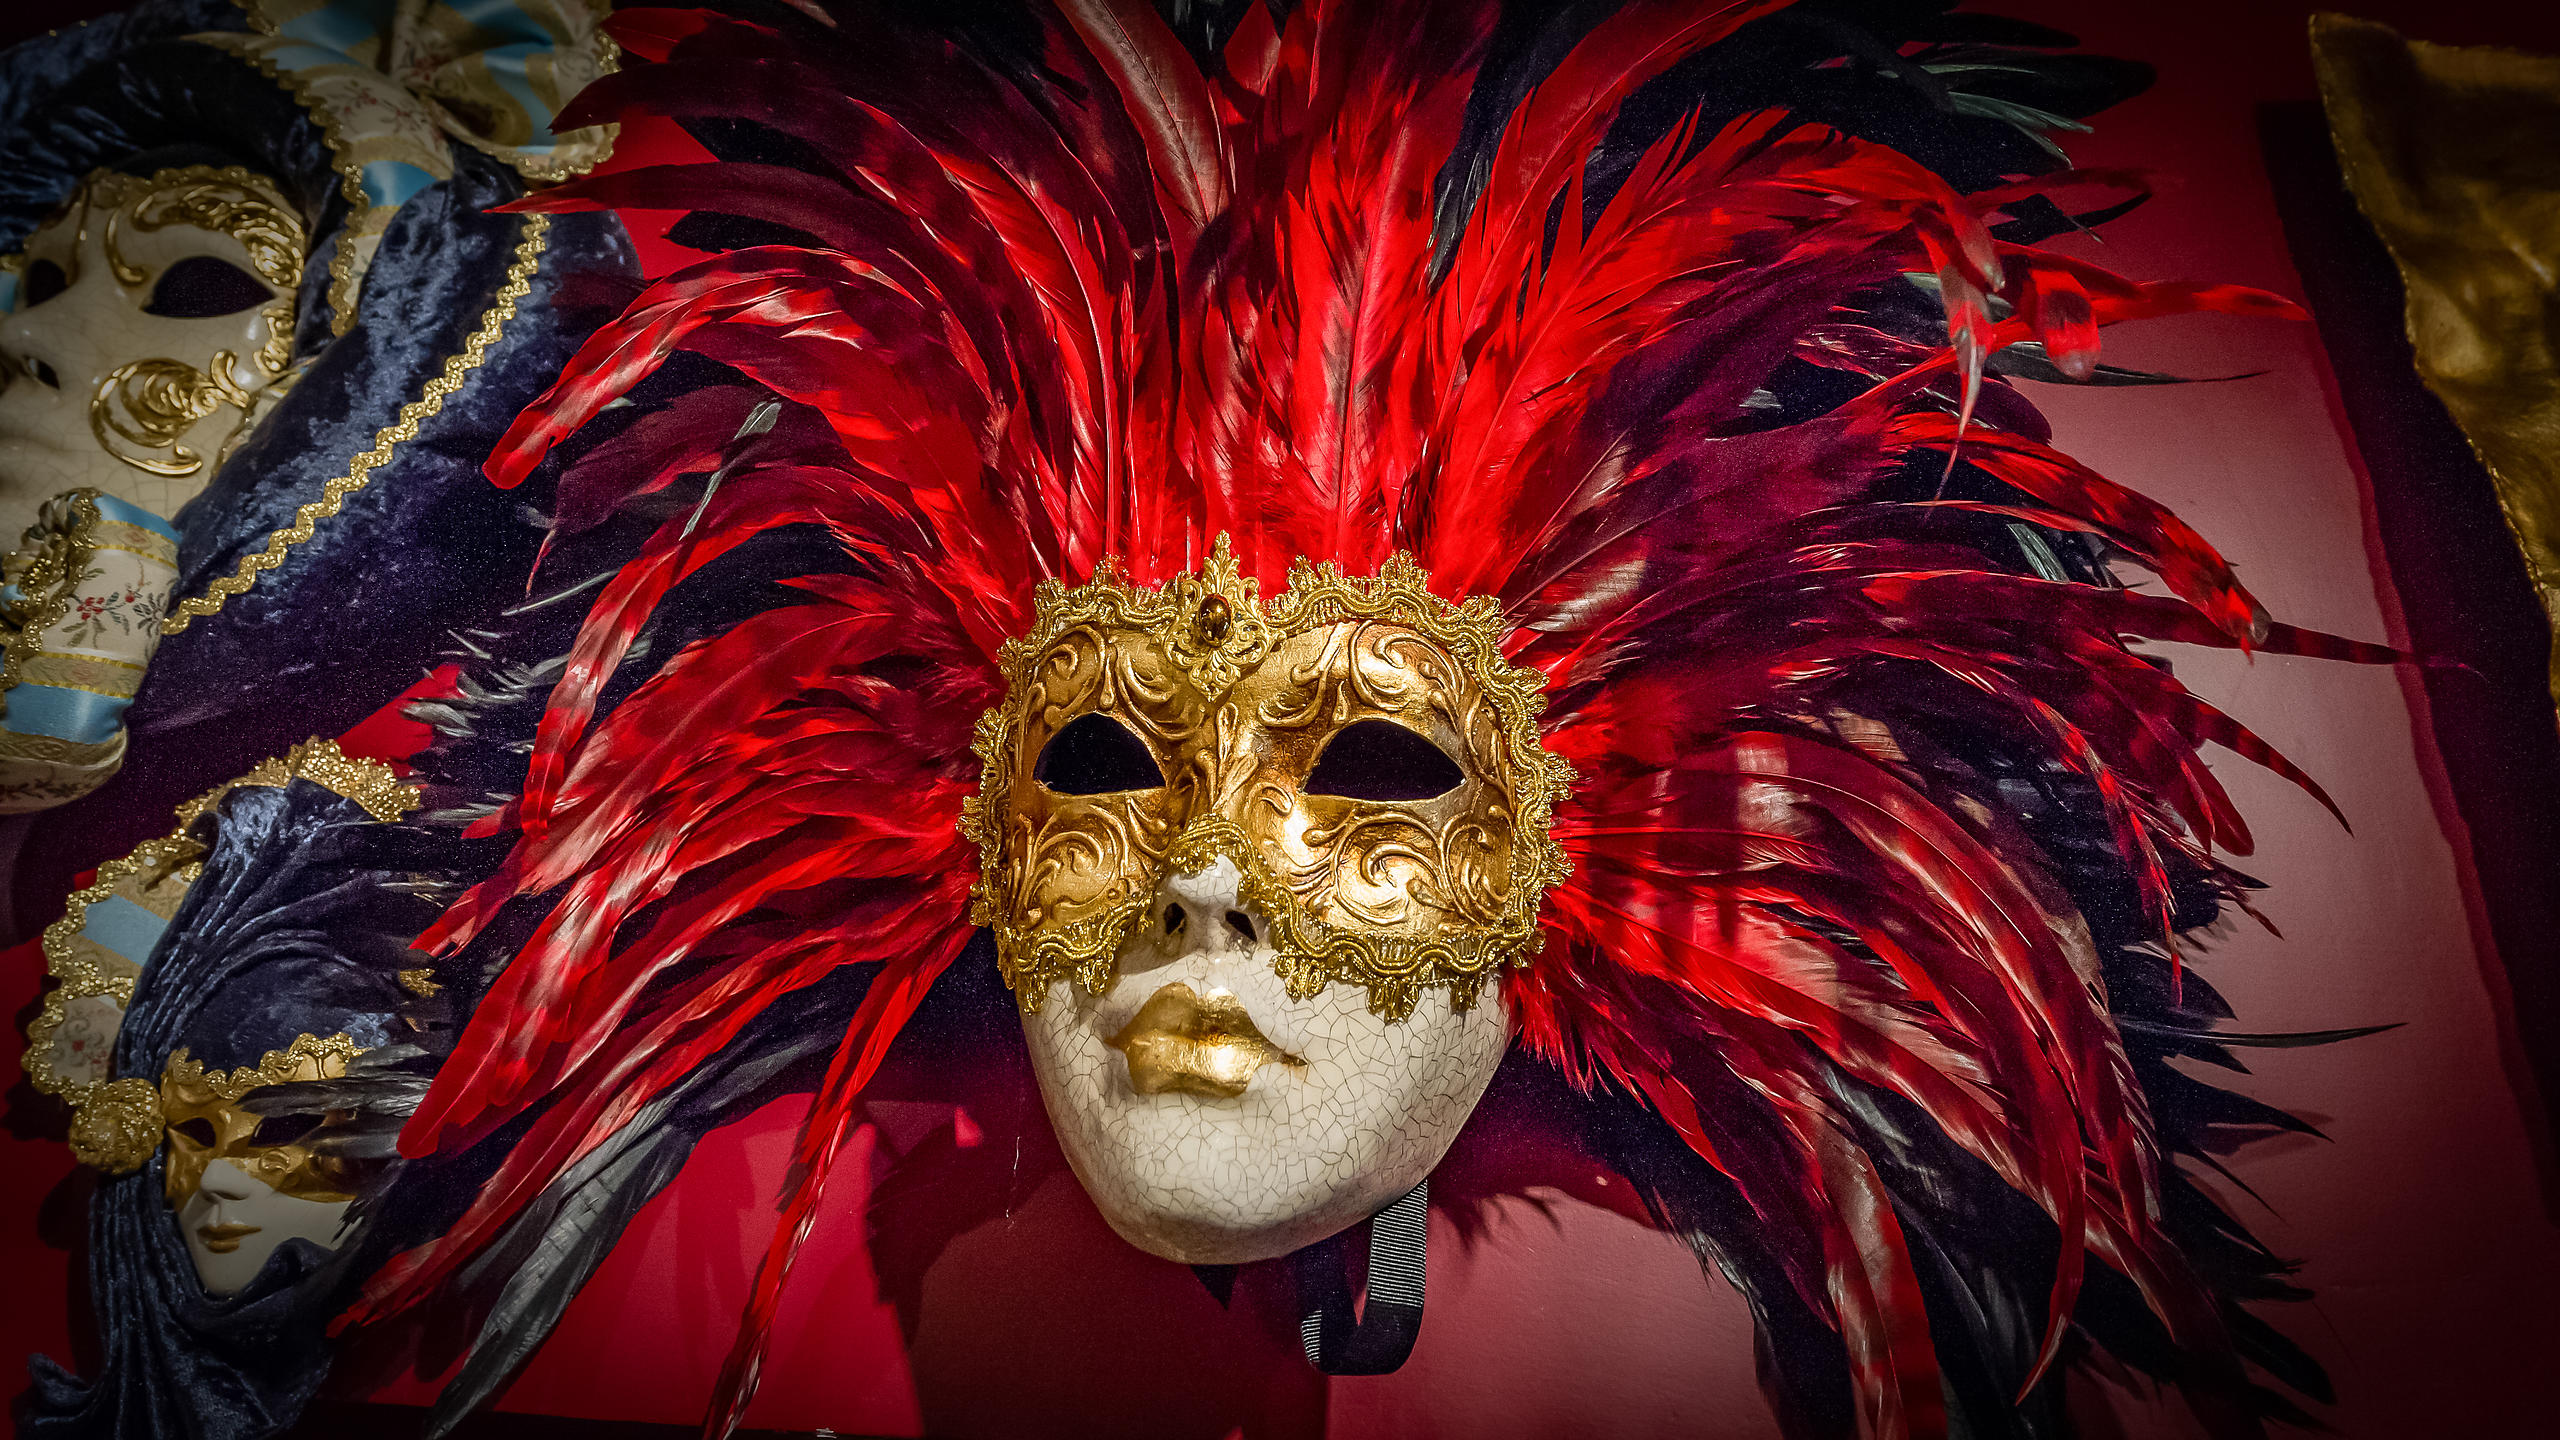 Red Feather Masque in A Venetian Shop Window